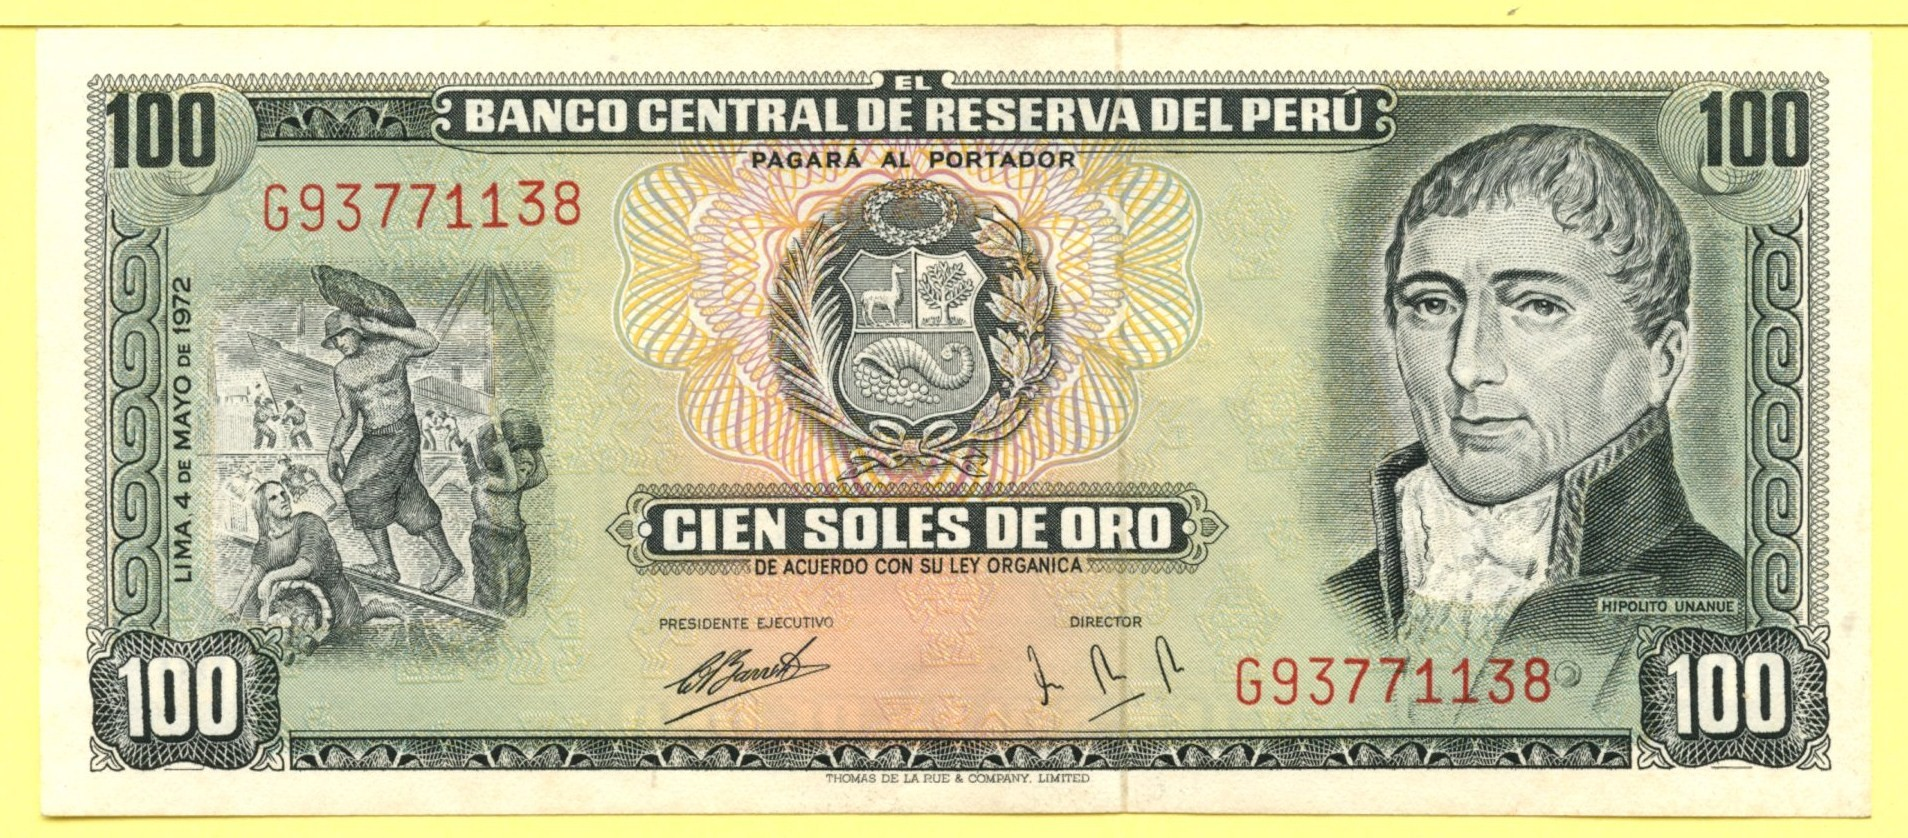 Peru currency page two 15272 thecheapjerseys Choice Image